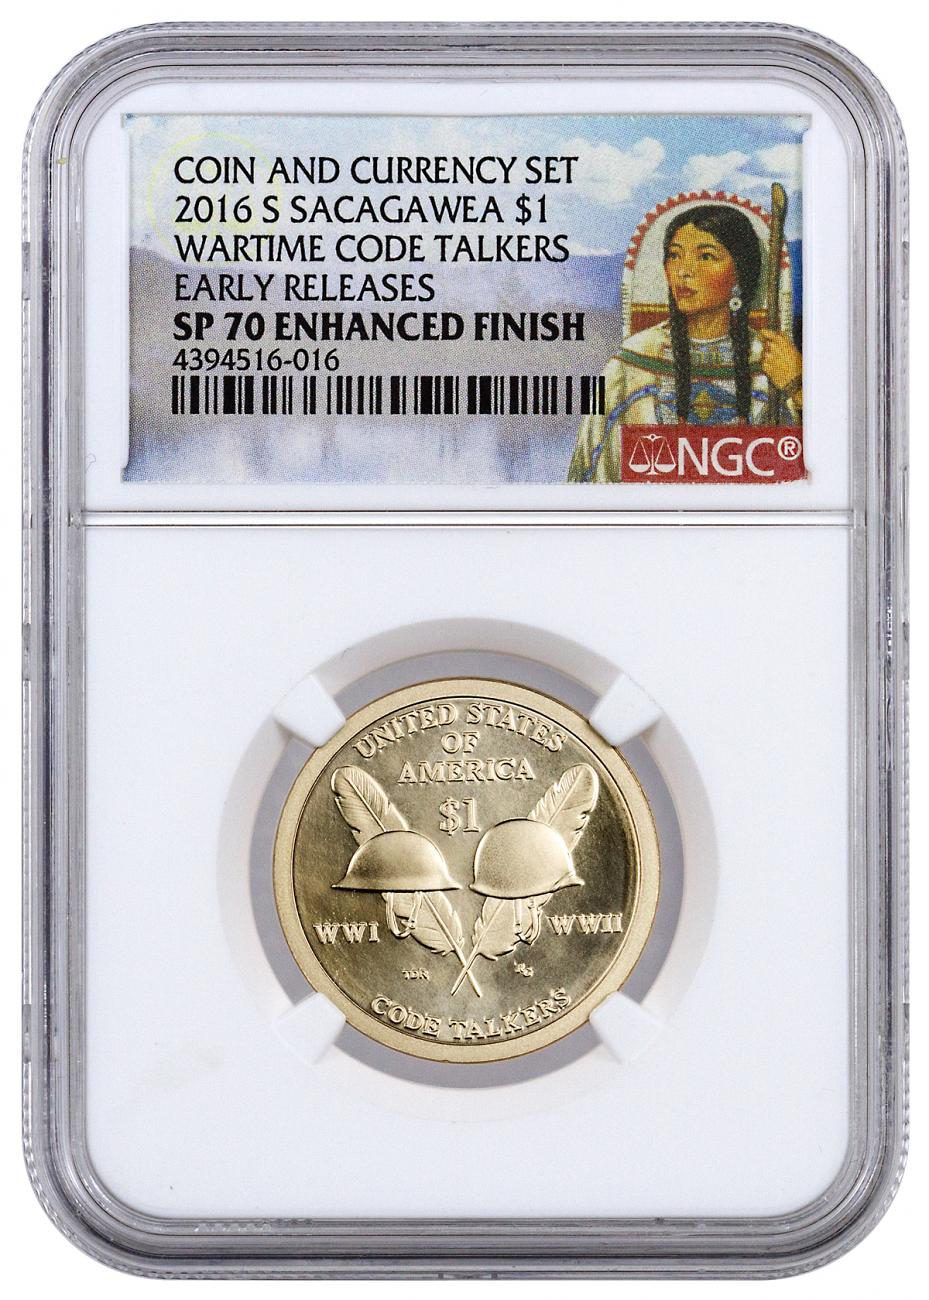 2016-S $1 Coin and Currency Set - Code Talkers - NGC SP70 Early Releases with PMG GEM Uncirculated Banknote